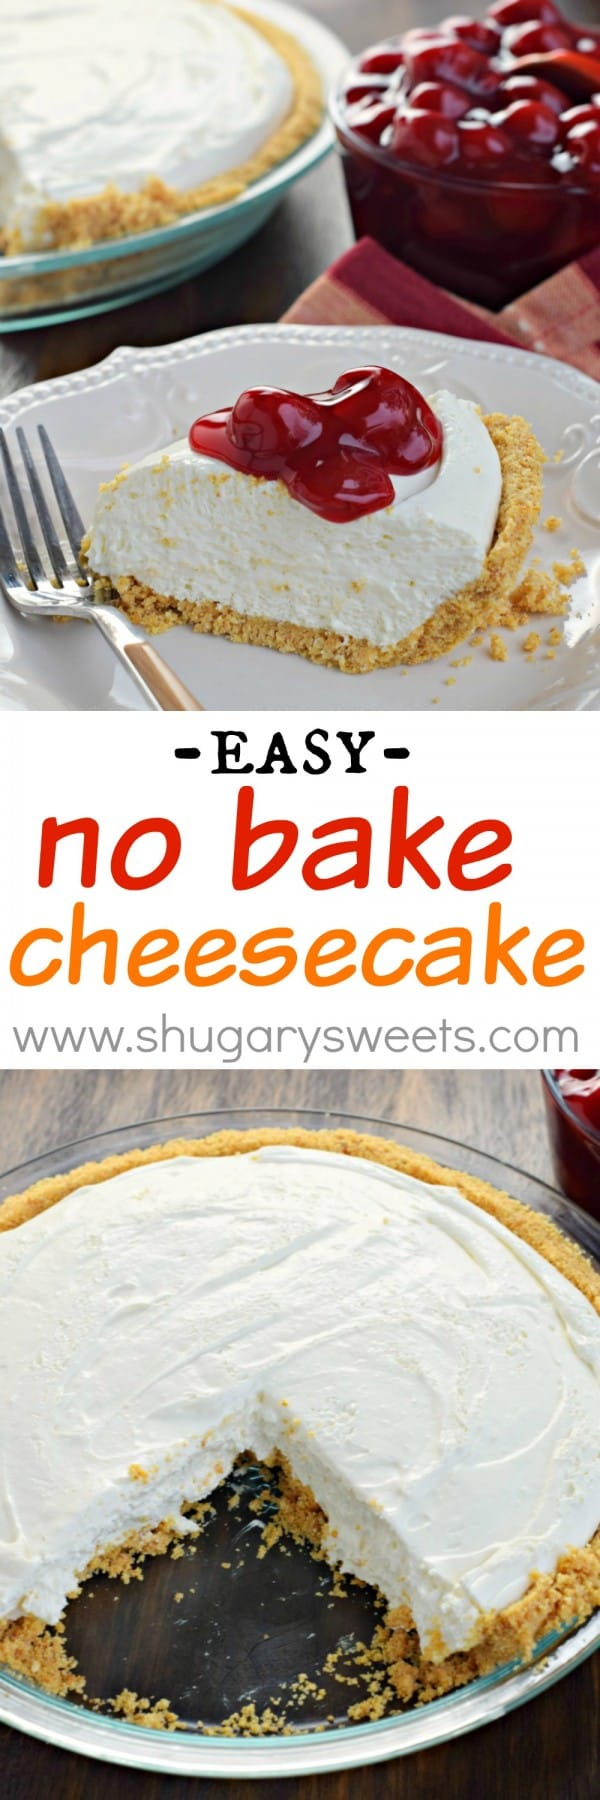 Easy to make, this No Bake Cheesecake is perfect any time of year. For a little more sweetness, top it with some Cherry Pie filling!